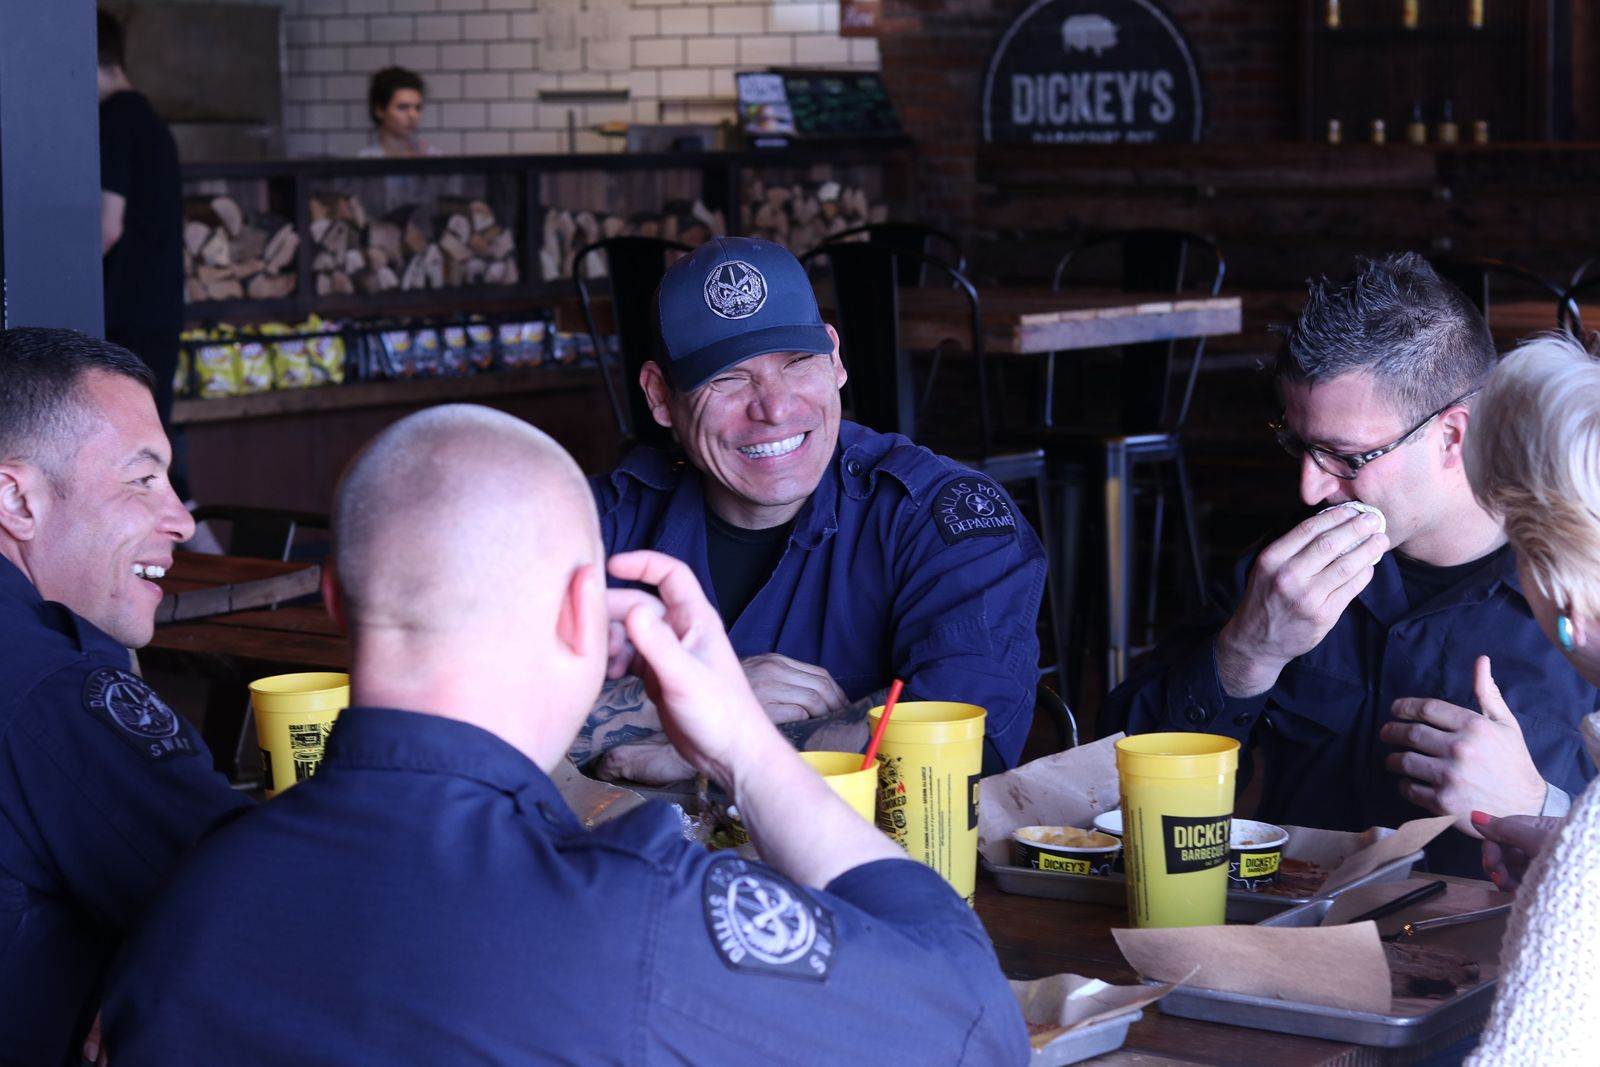 Donate to Local First Responders at Dickey's Barbecue Pit